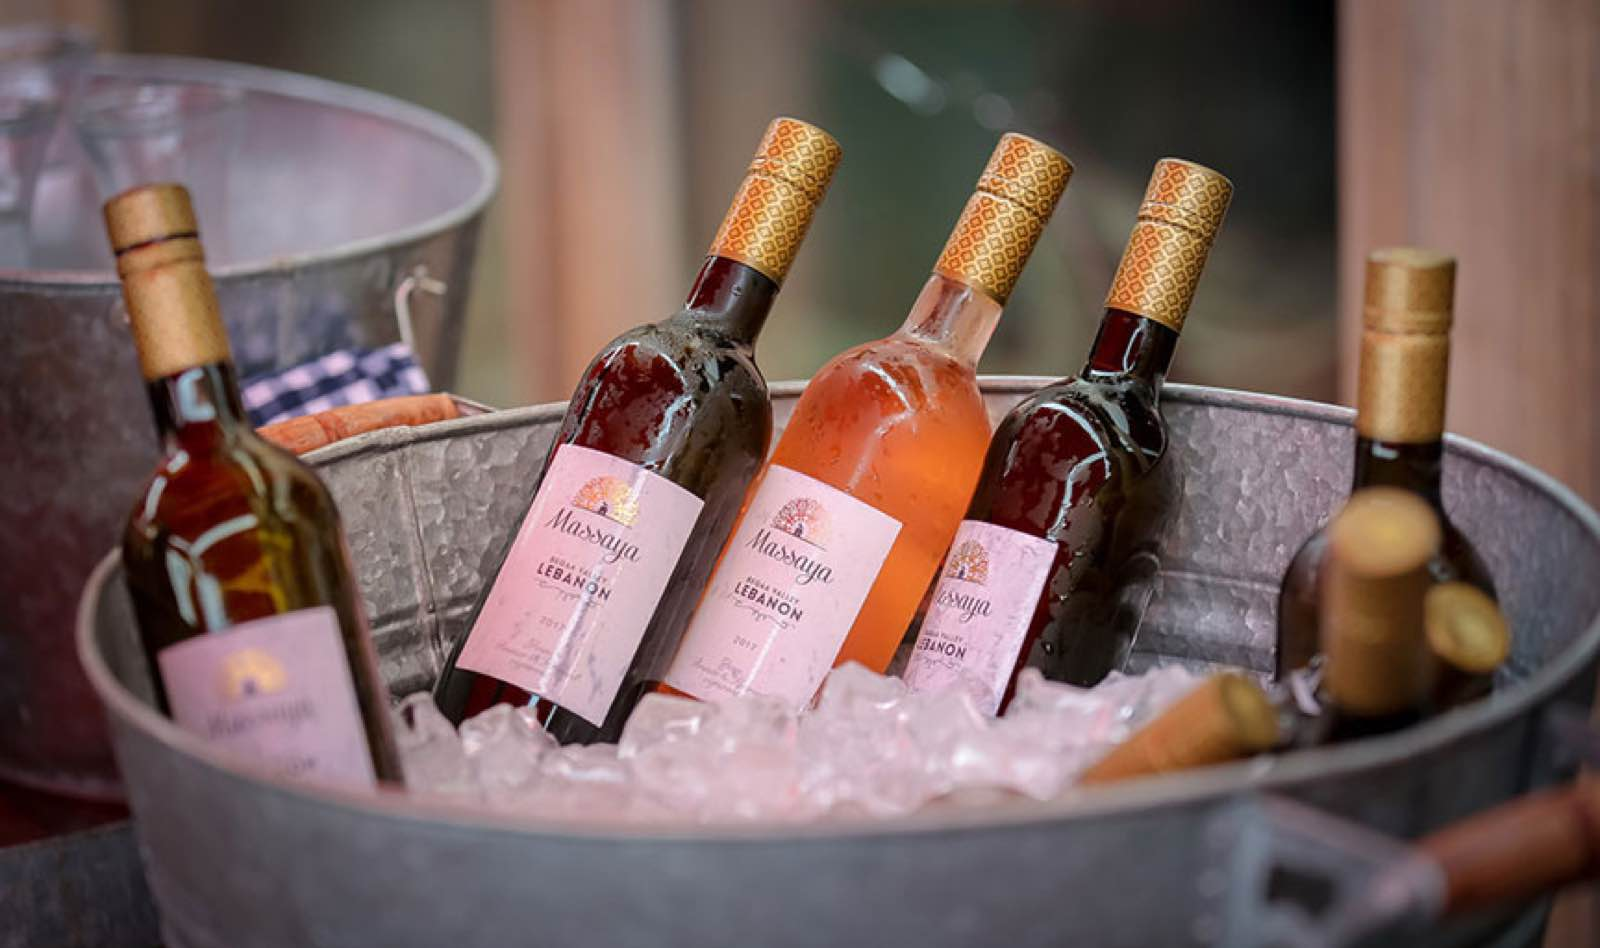 White and rosé wines are the popular summer wine in Lebanon